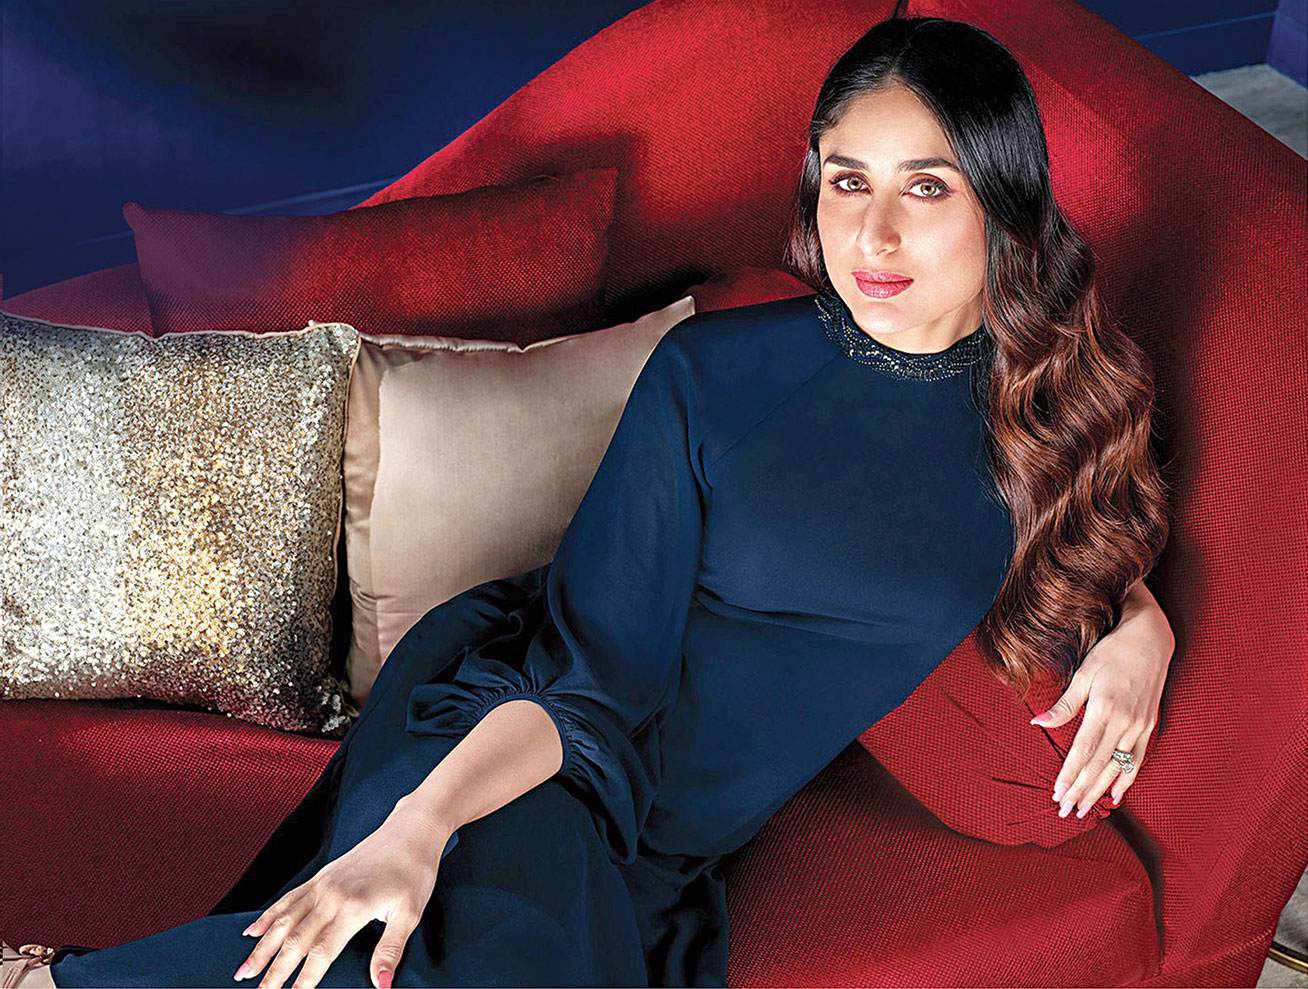 What better platform than Dance India Dance to make my TV debut on: Kareena Kapoor